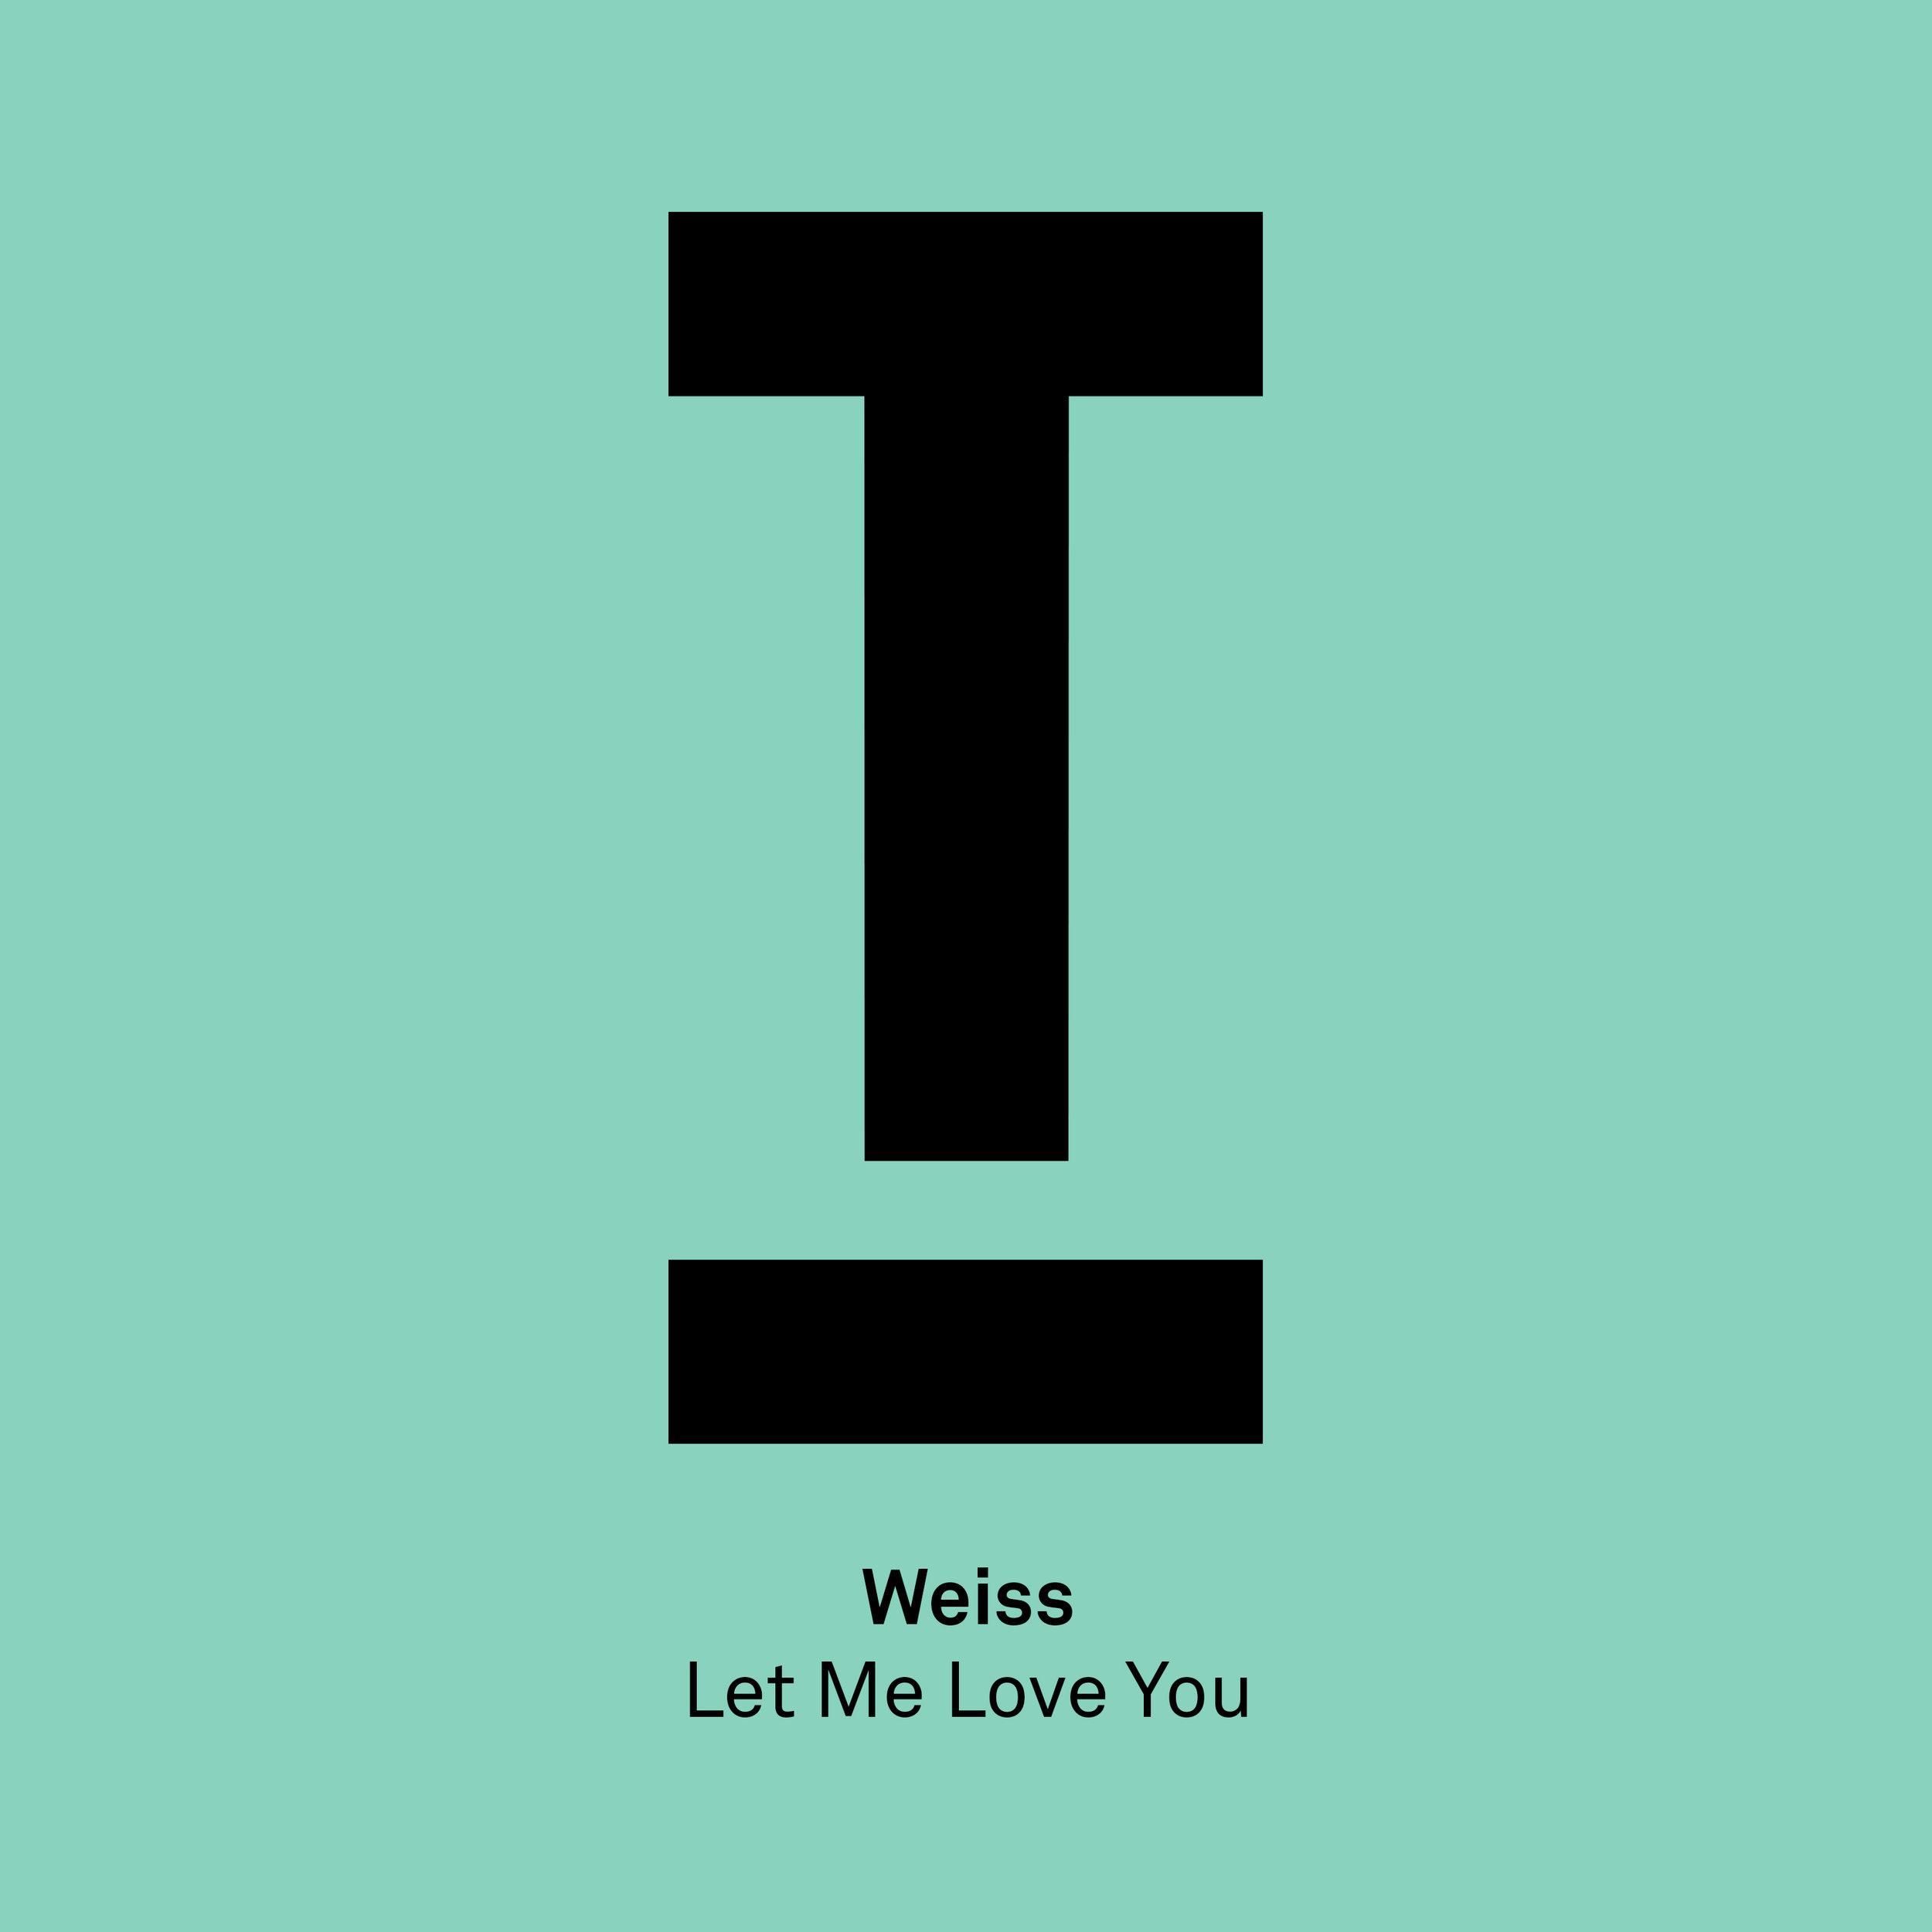 Weiss- Let Me Love You